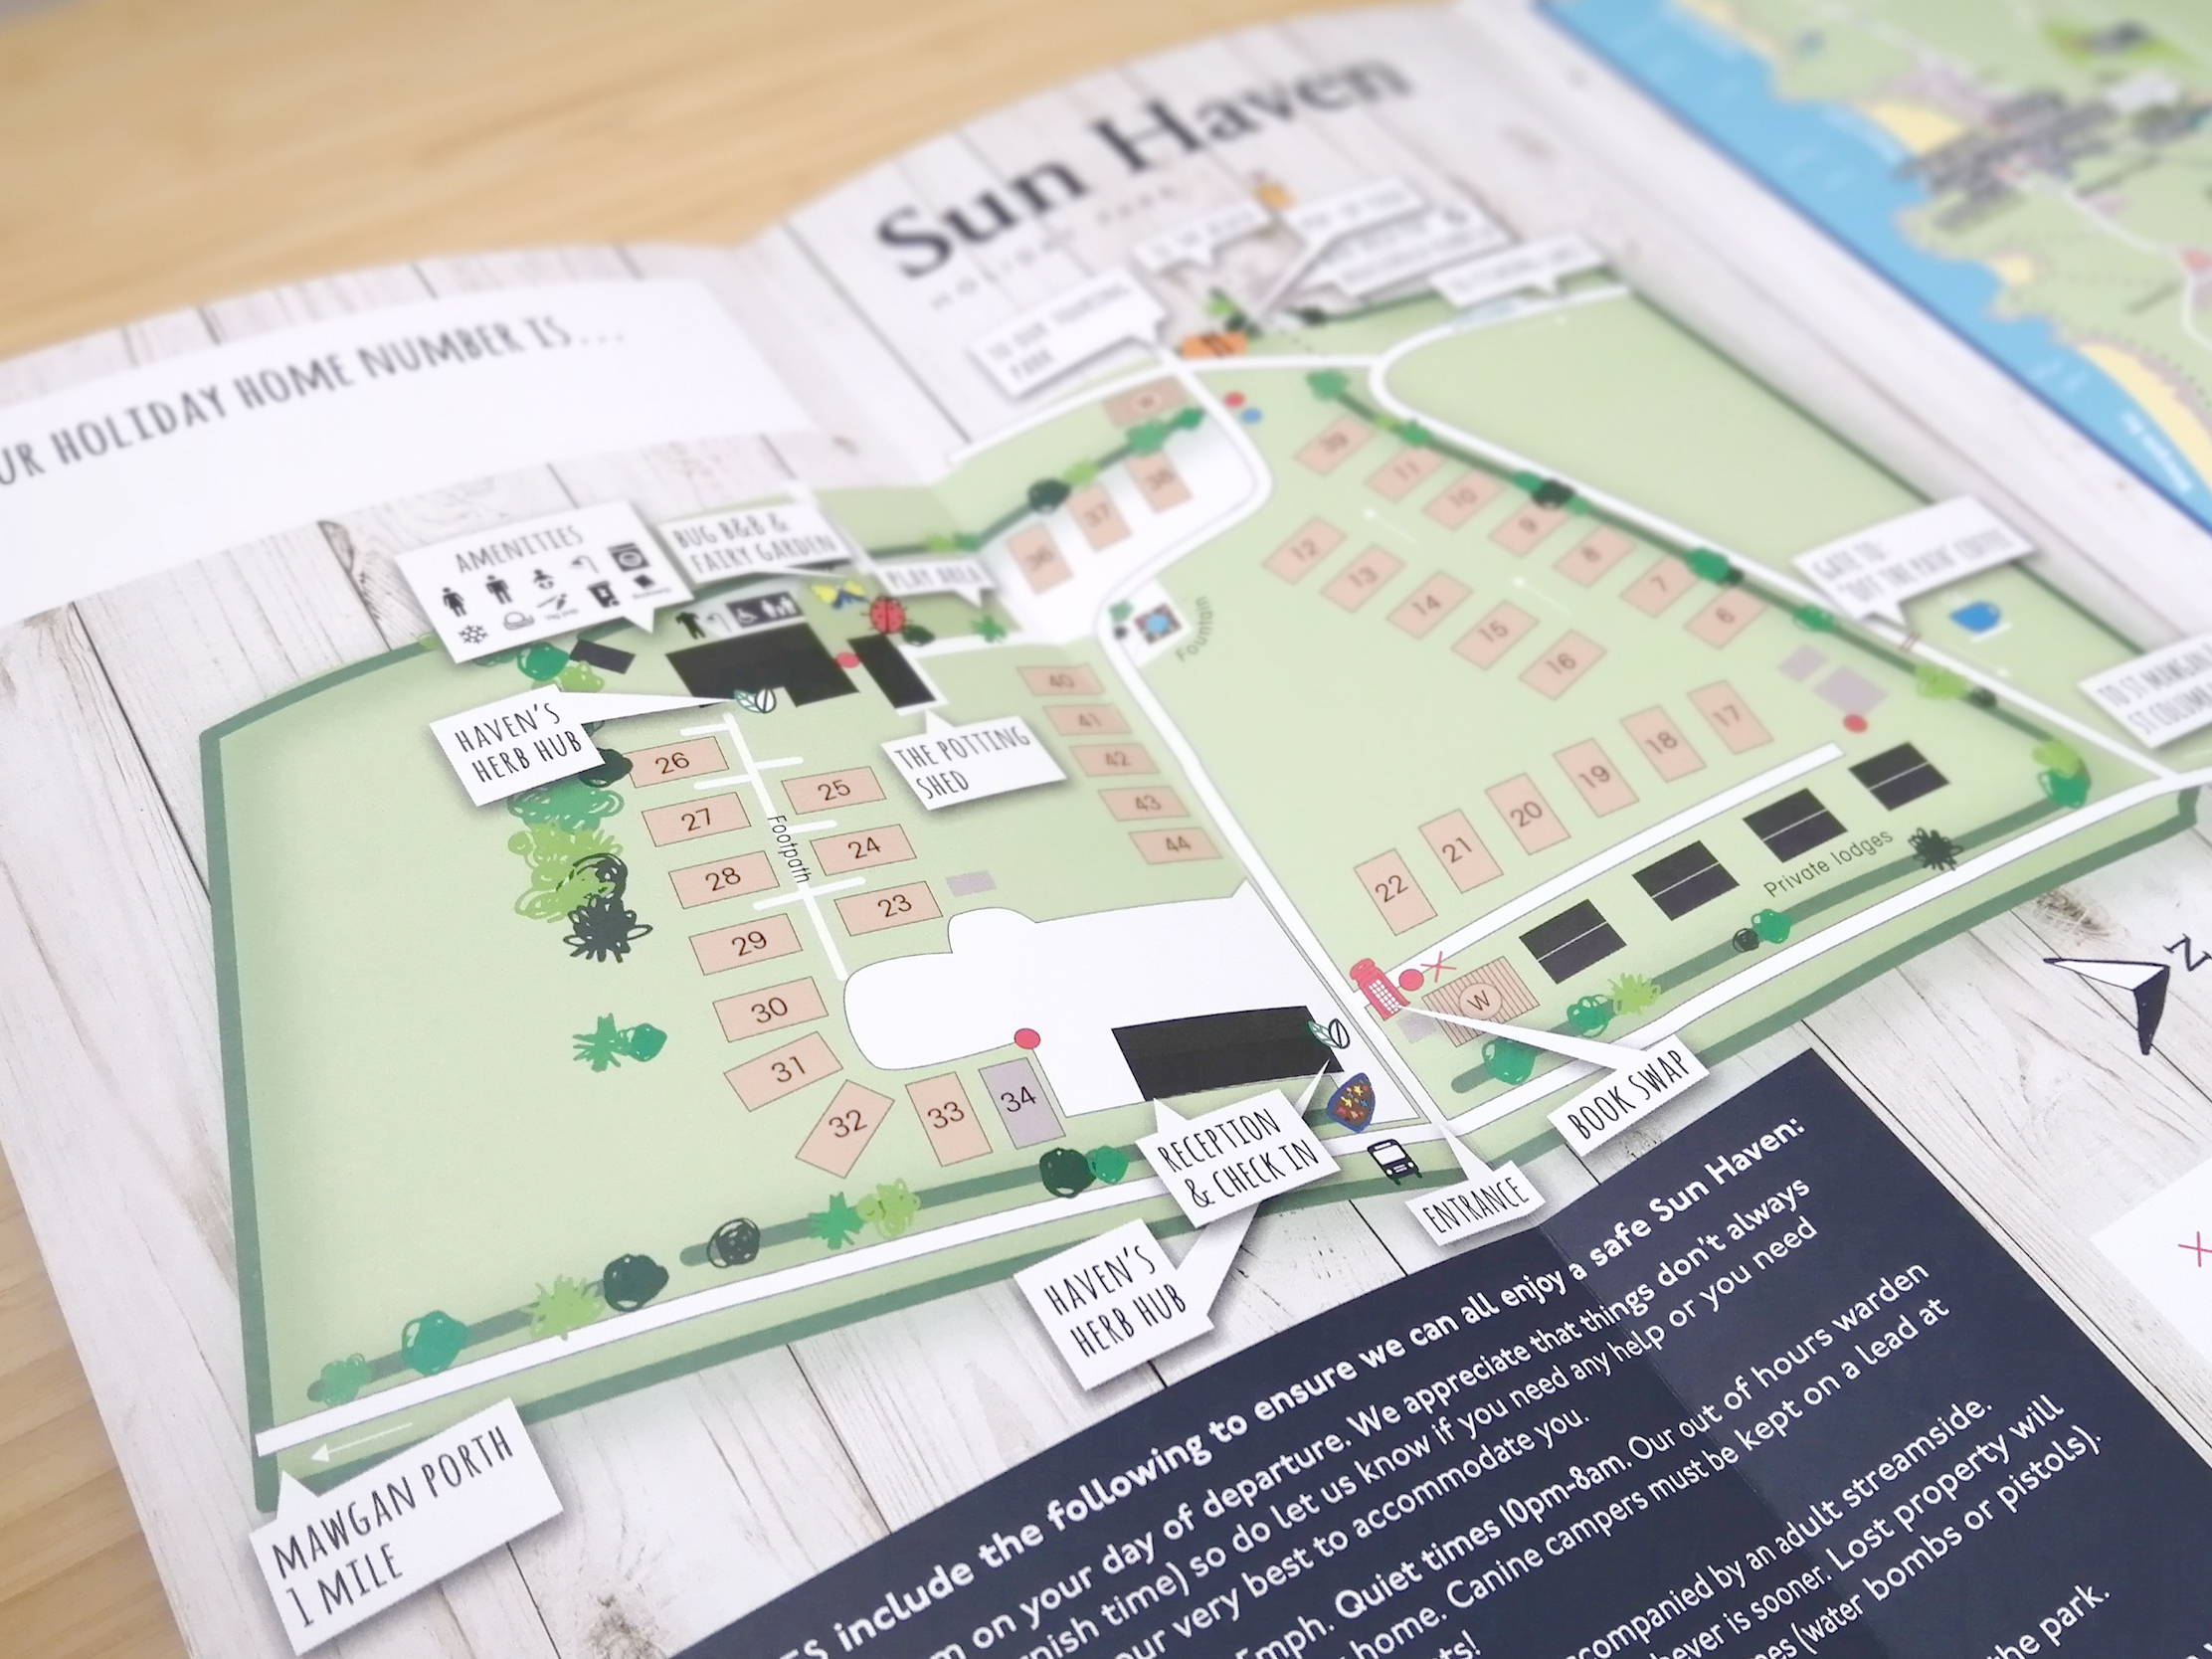 Sun Haven holiday home map leaflet